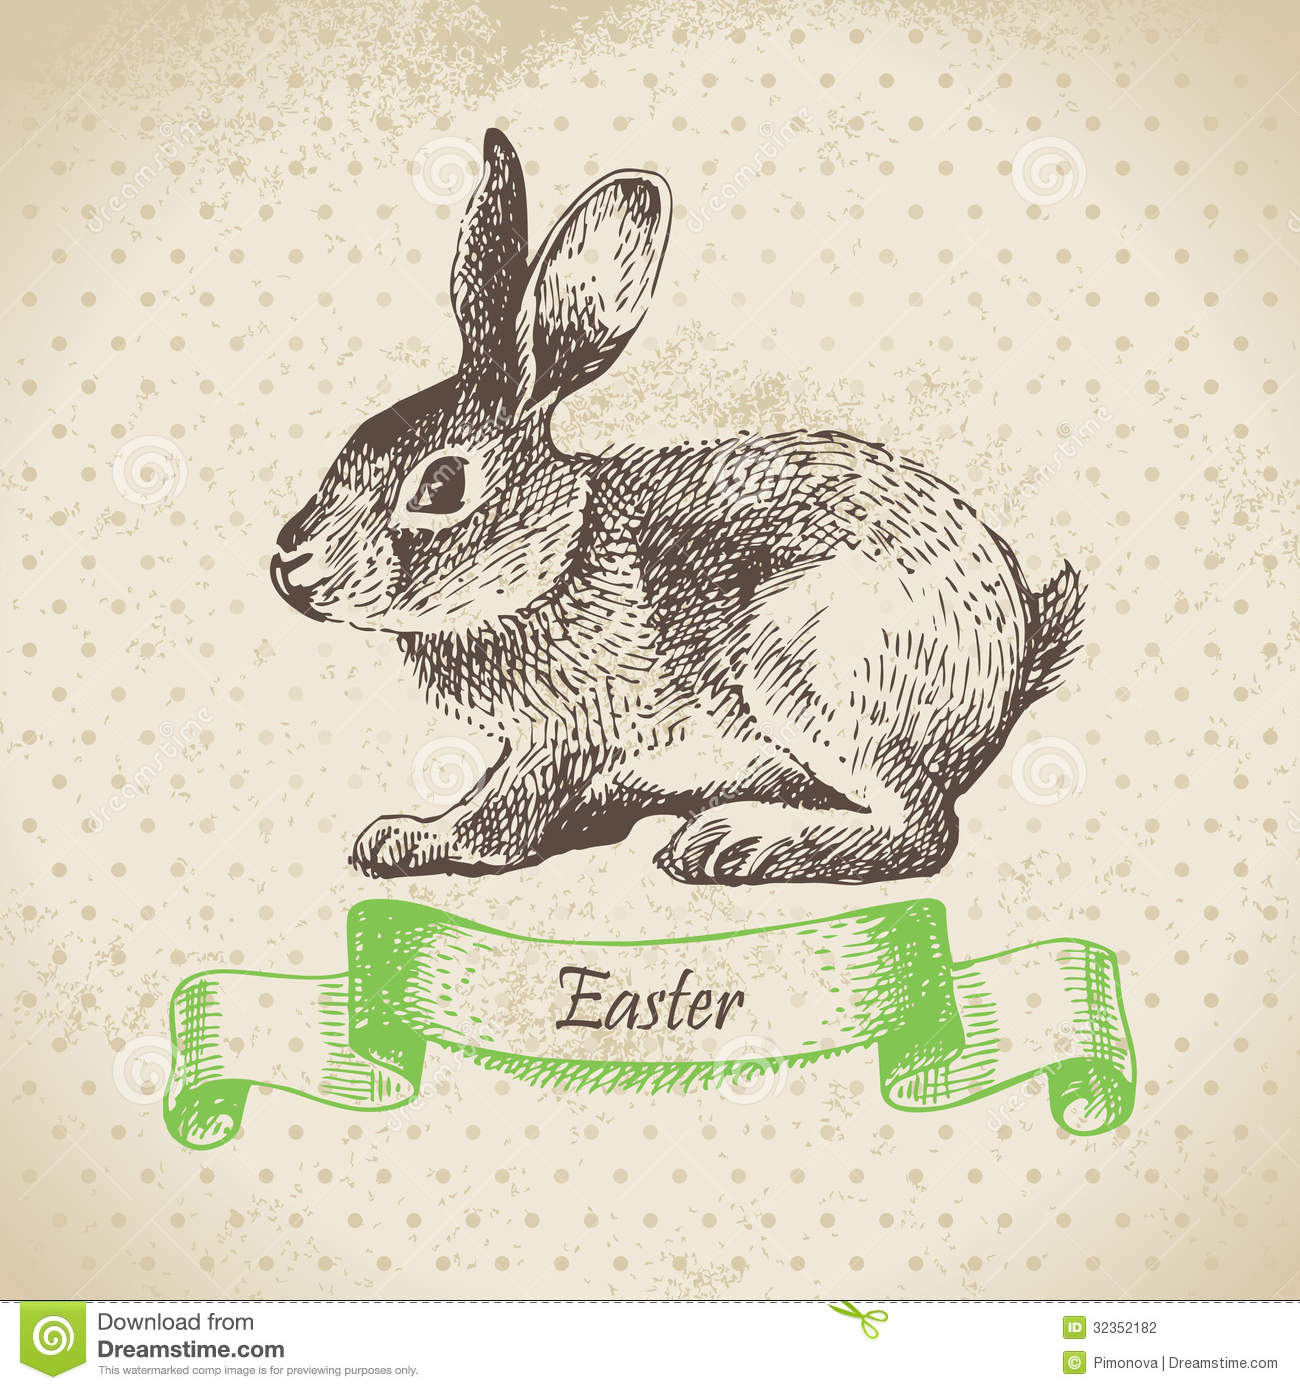 Easter Bunny Line Drawing : Vintage background with easter rabbit stock vector image